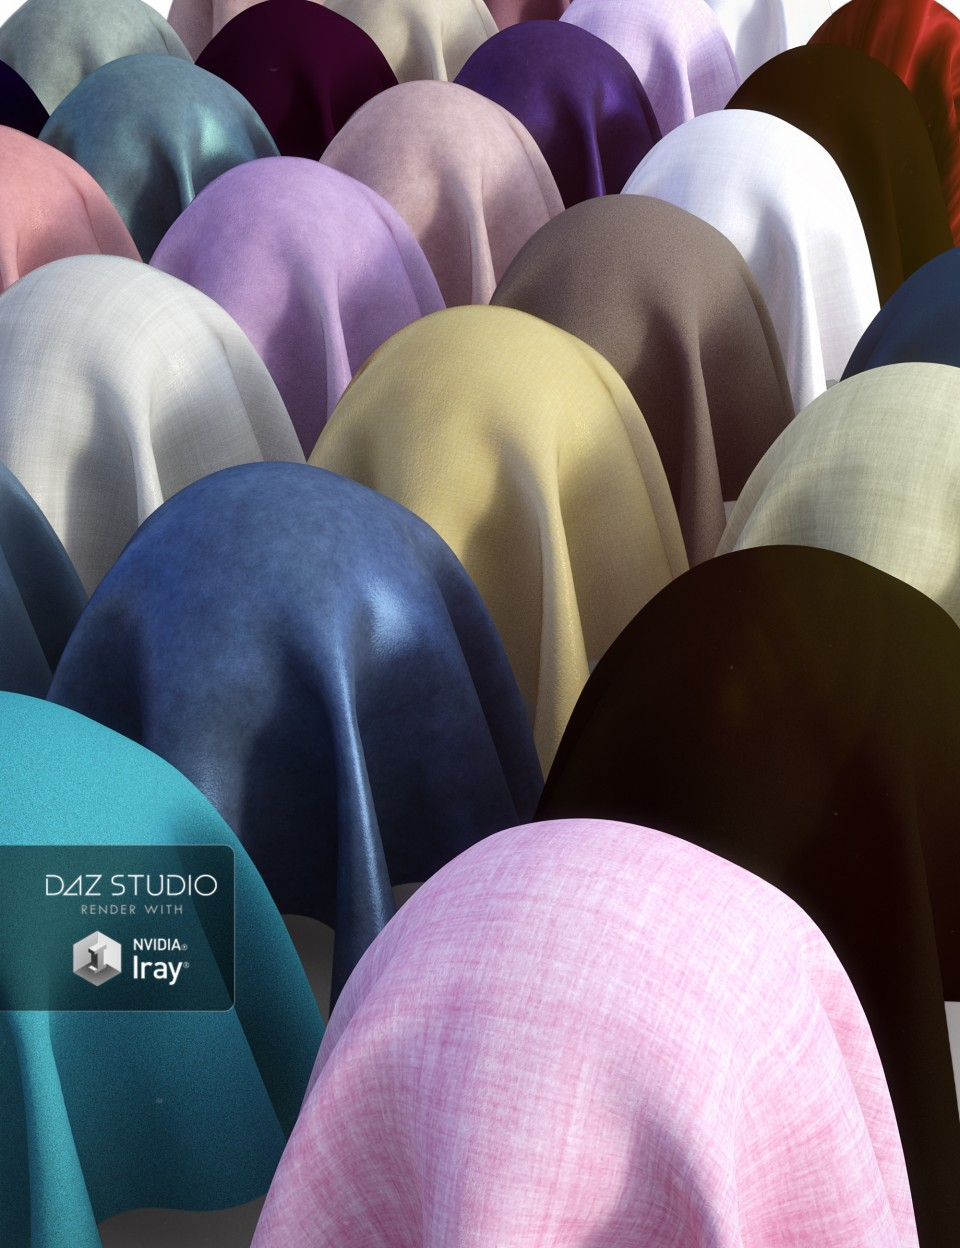 Everyday Cloth Iray Shaders_DAZ3D下载站